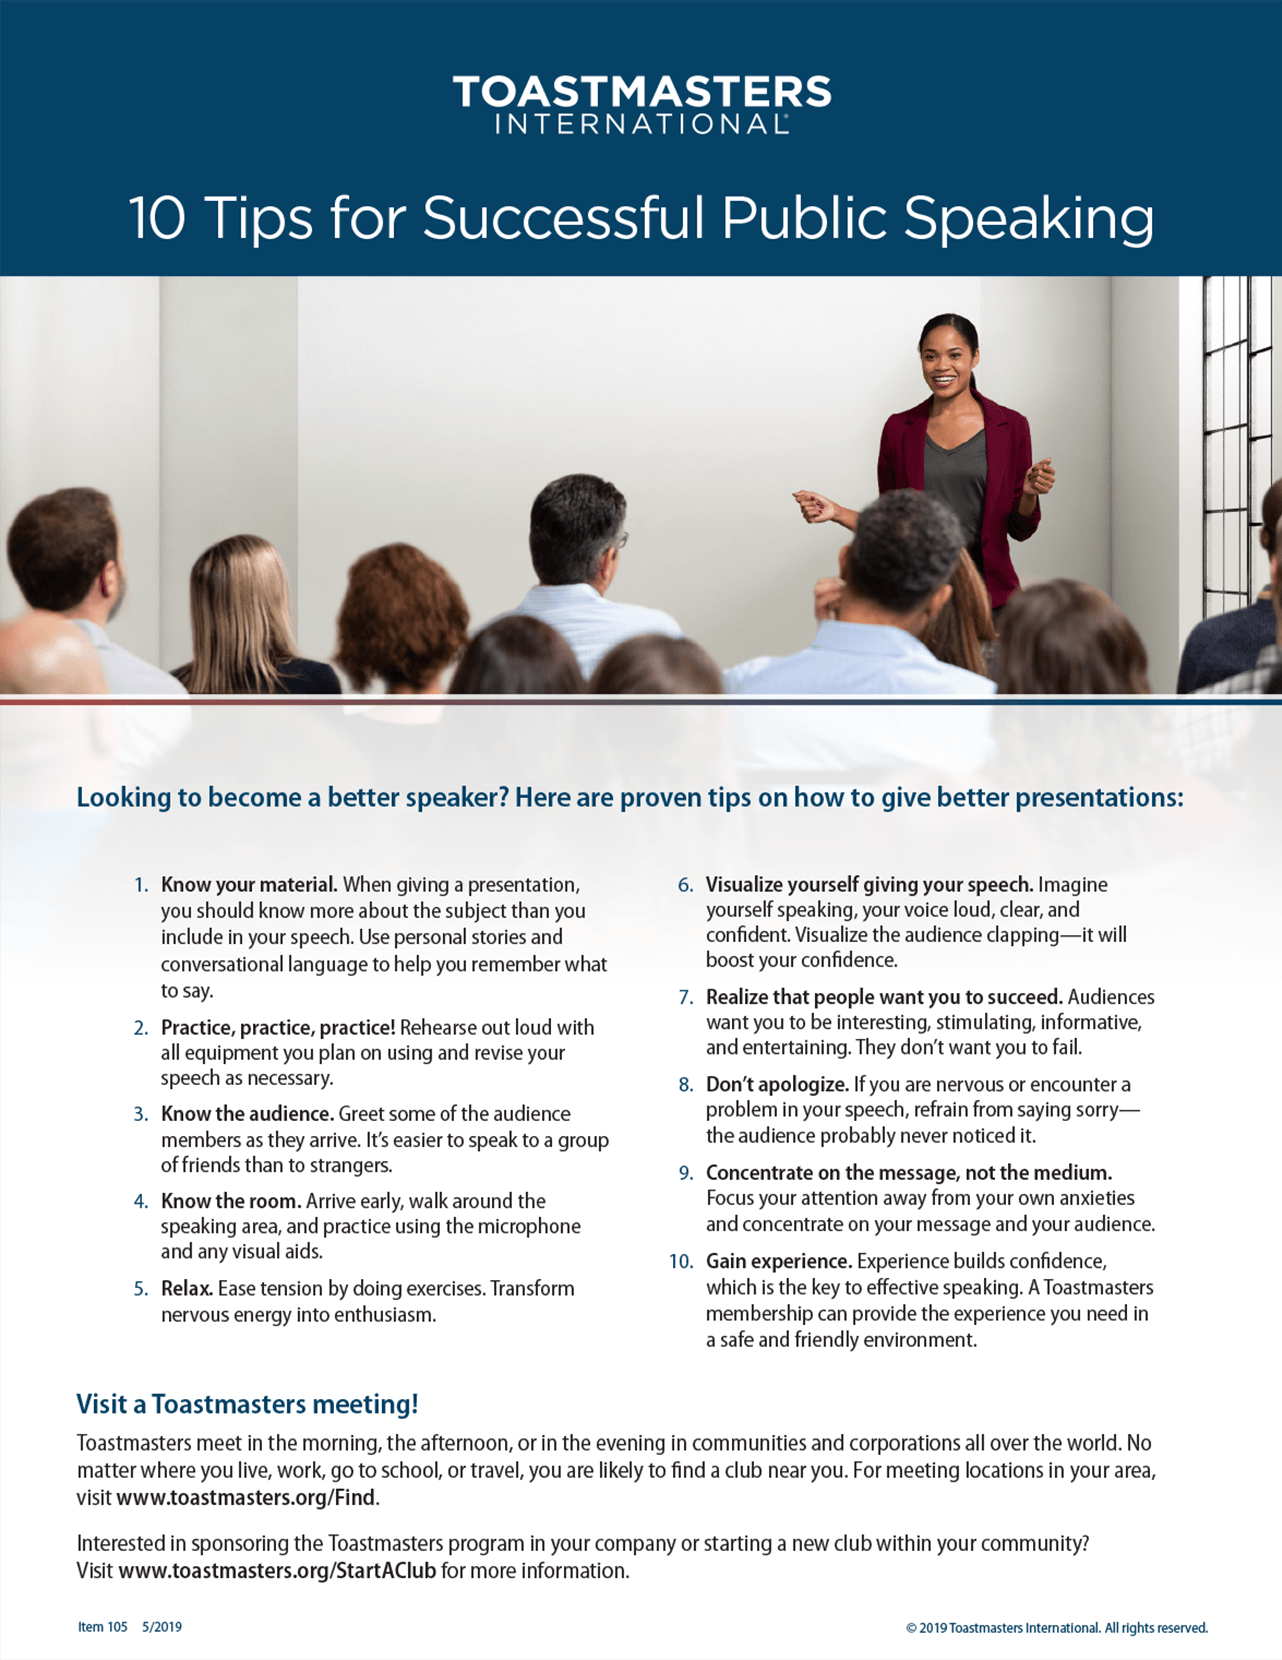 10 Tips for Successful Public Speaking Flier